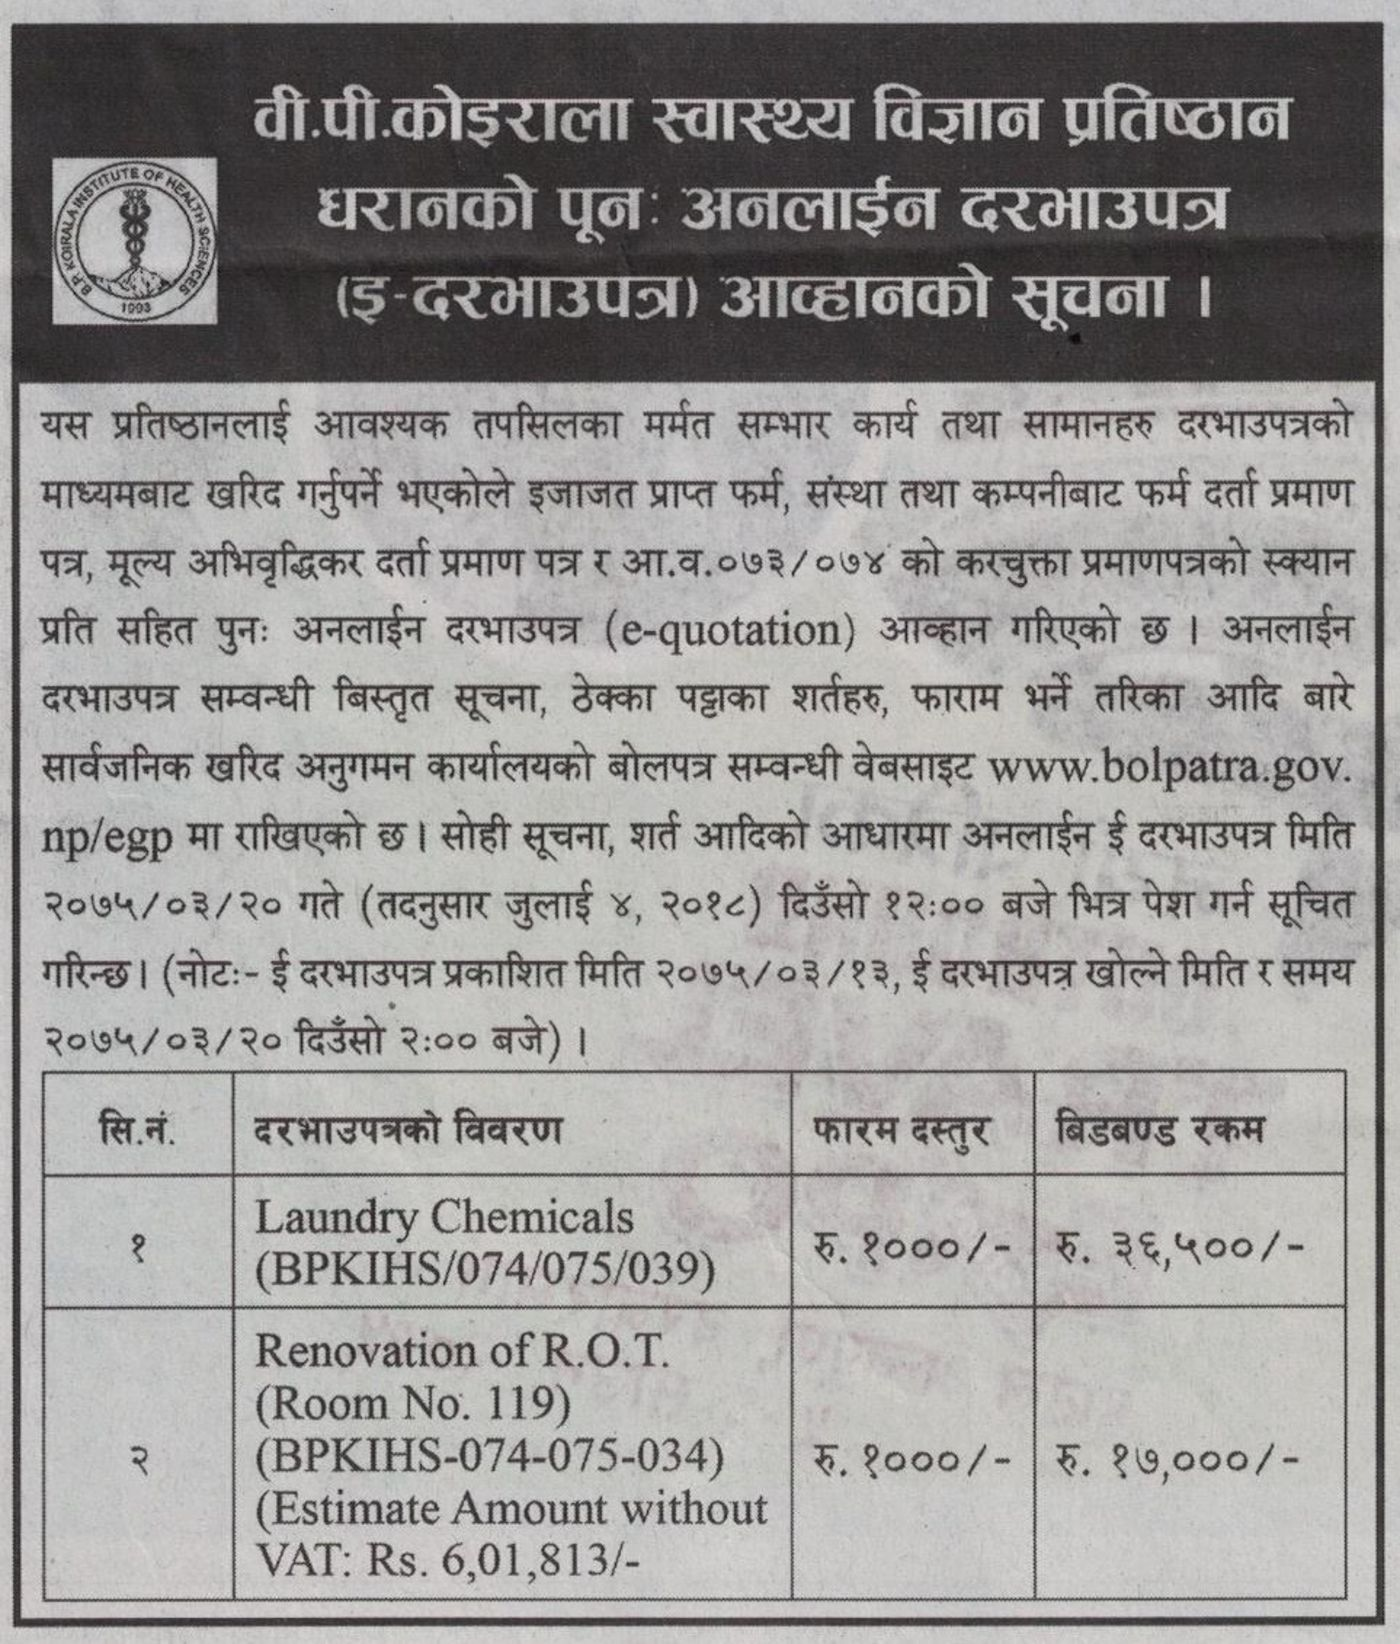 Bids and Tenders Nepal - E-Quotation - Laundry Chemicals, Renovation